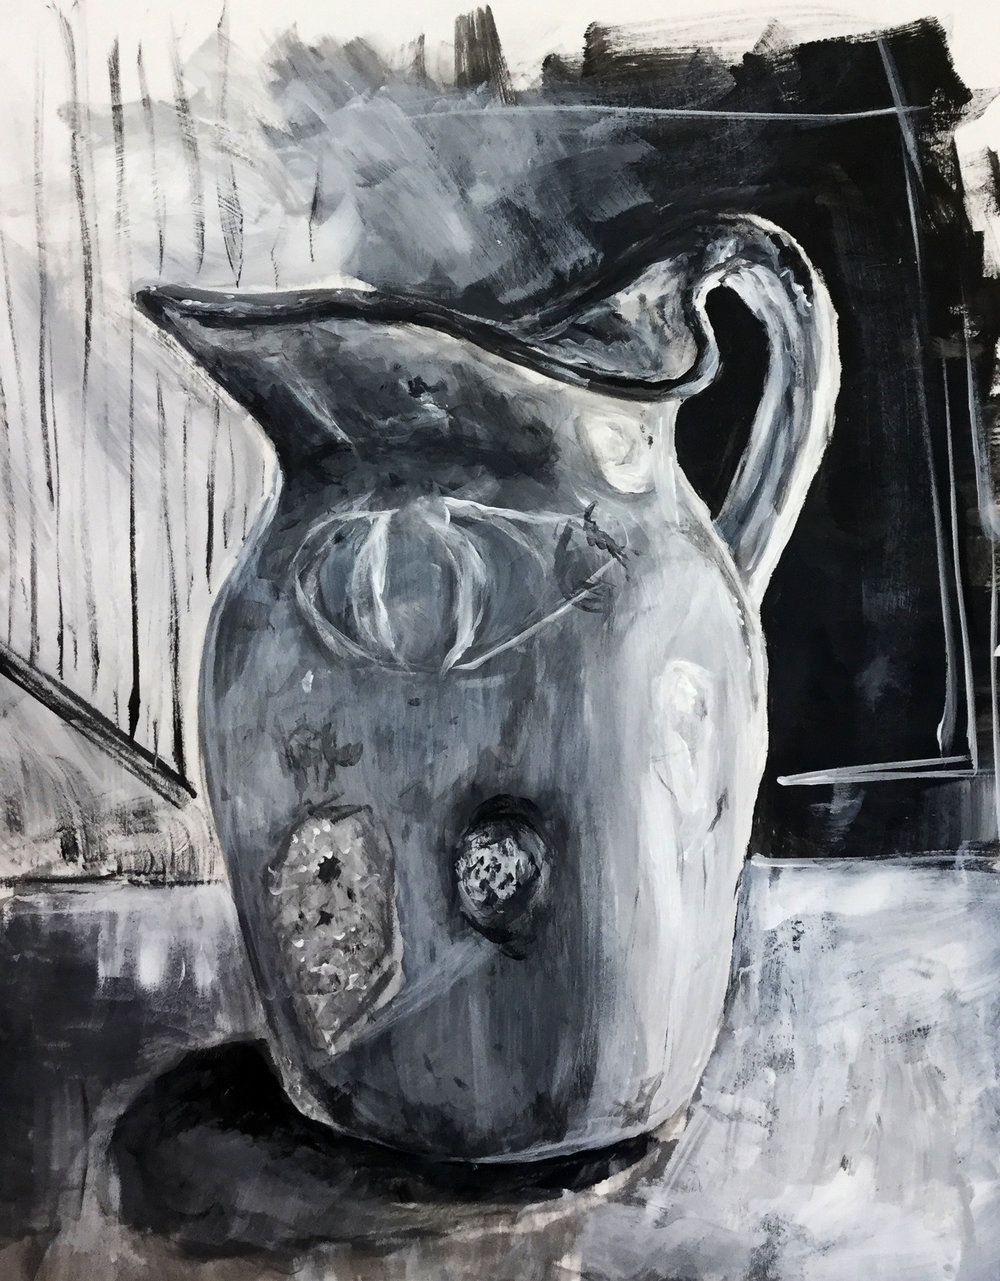 PAINTING SUMMER INTENSIVE -Pratt Munson Williams and Proctor Art Institute    Project 1- Grey Scale Still Life   Acrylic on Canvas Paper